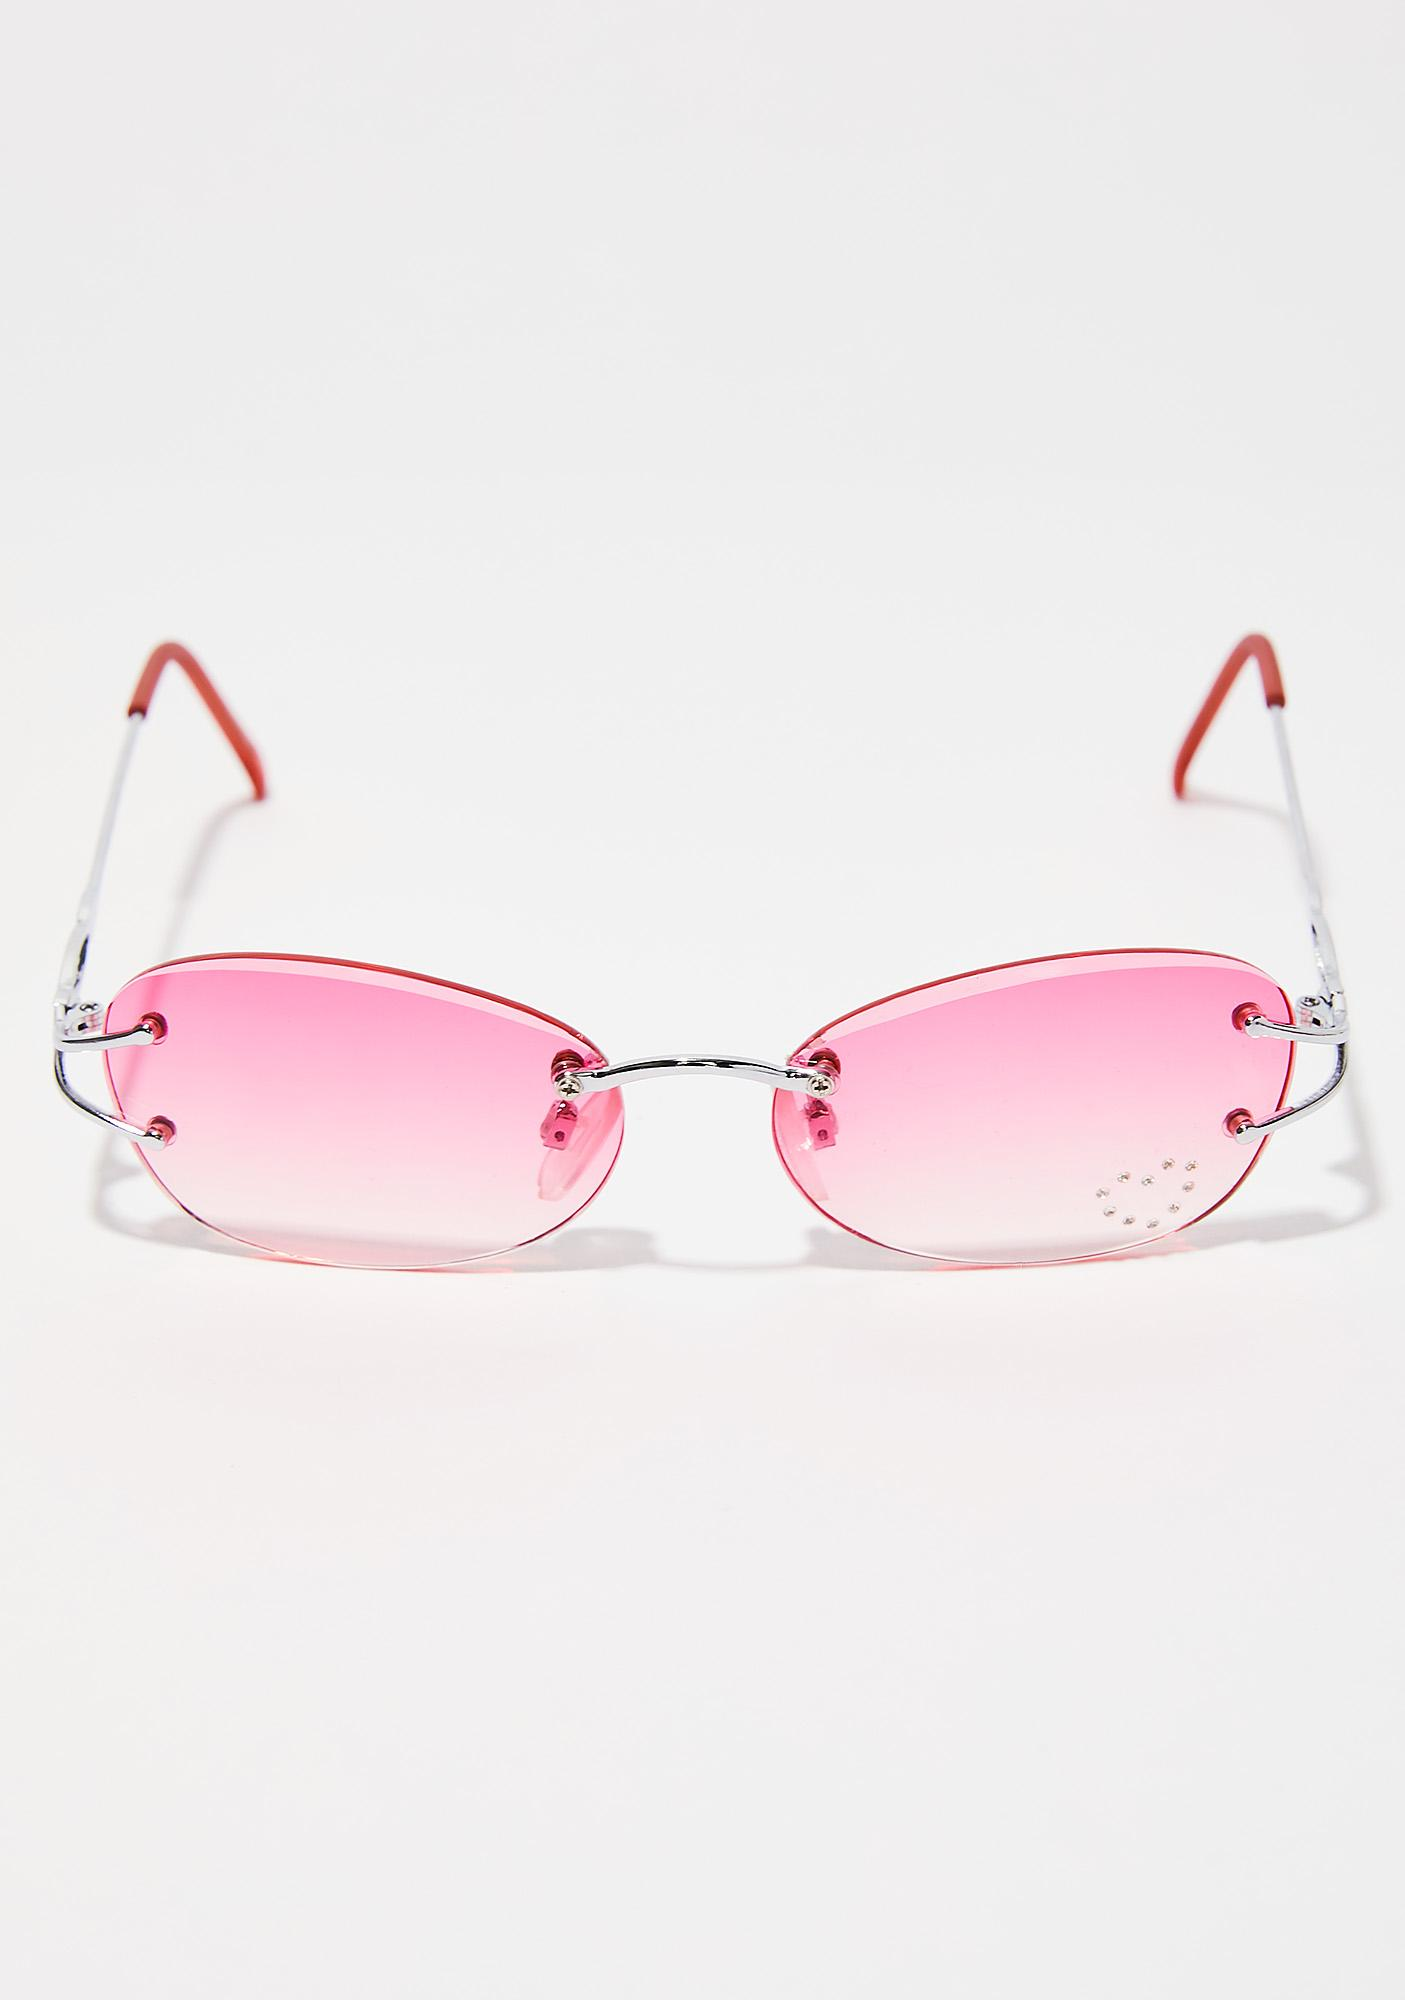 Mesmerized Oval Sunglasses